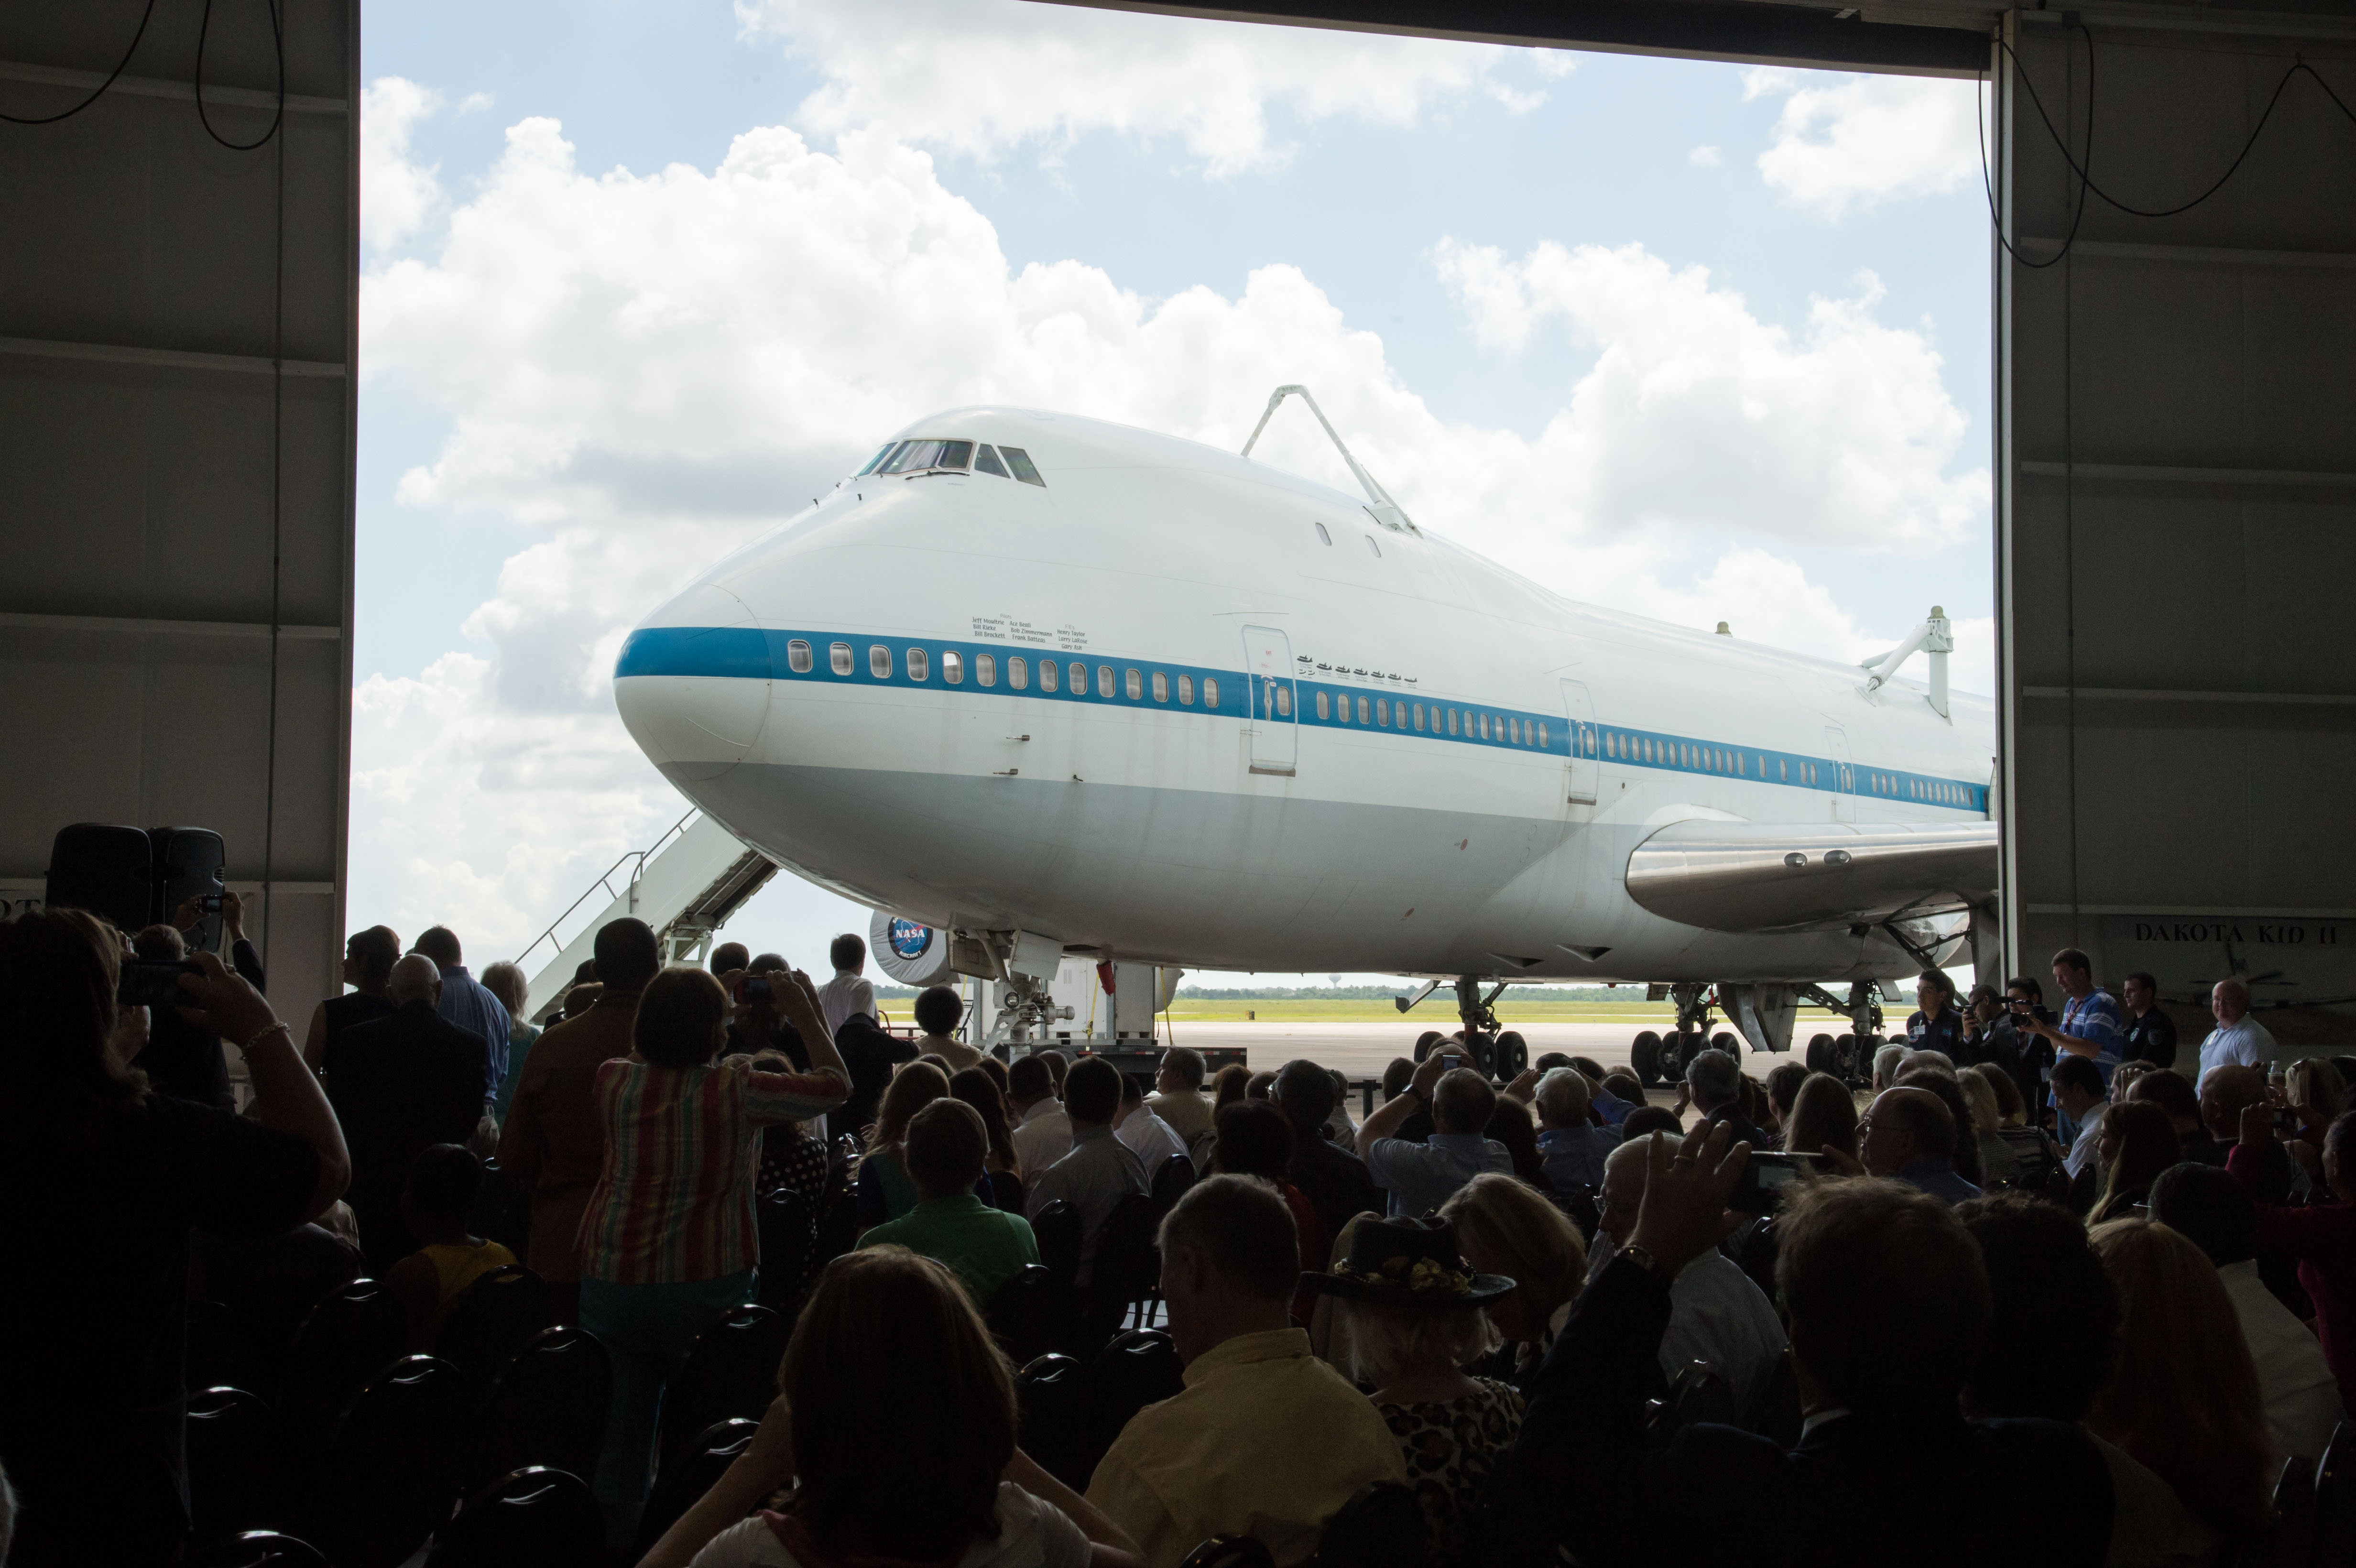 A crowd gathered to witness the arrival of the shuttle carrier aircraft